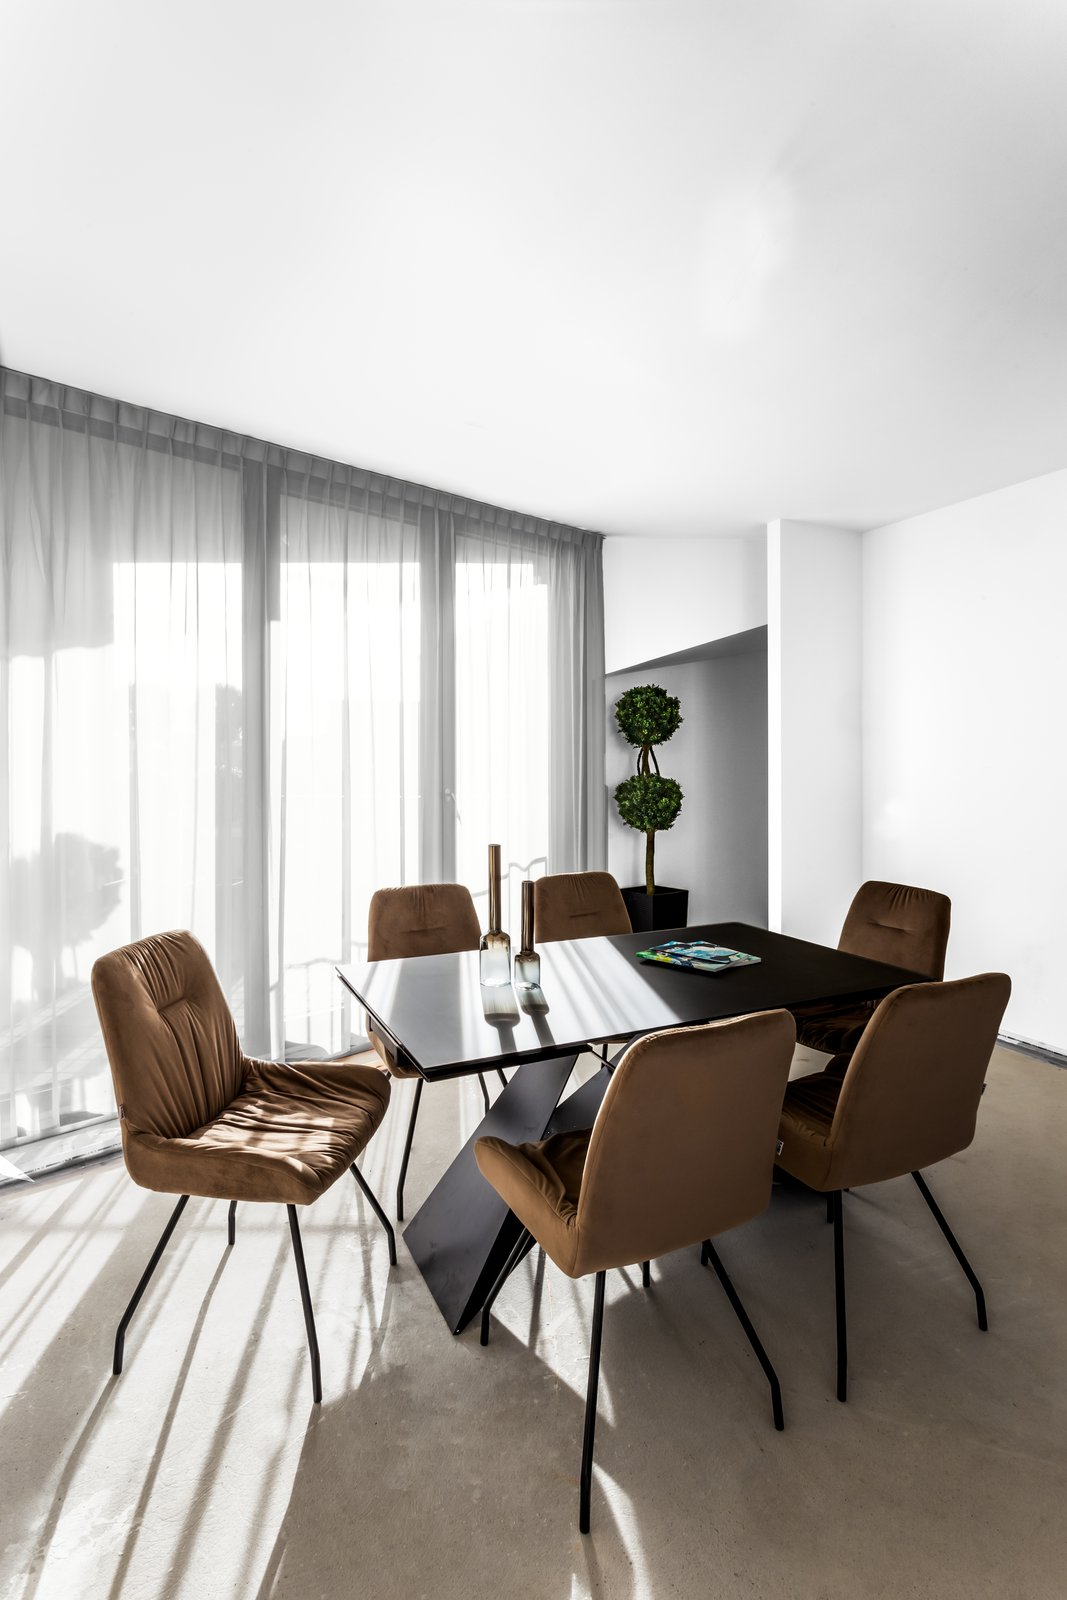 Dining Room, Table, and Chair SAPPHIRE Super Penthouse, VON ALBERT REAL ESTATE  SAPPHIRE Super Penthouse